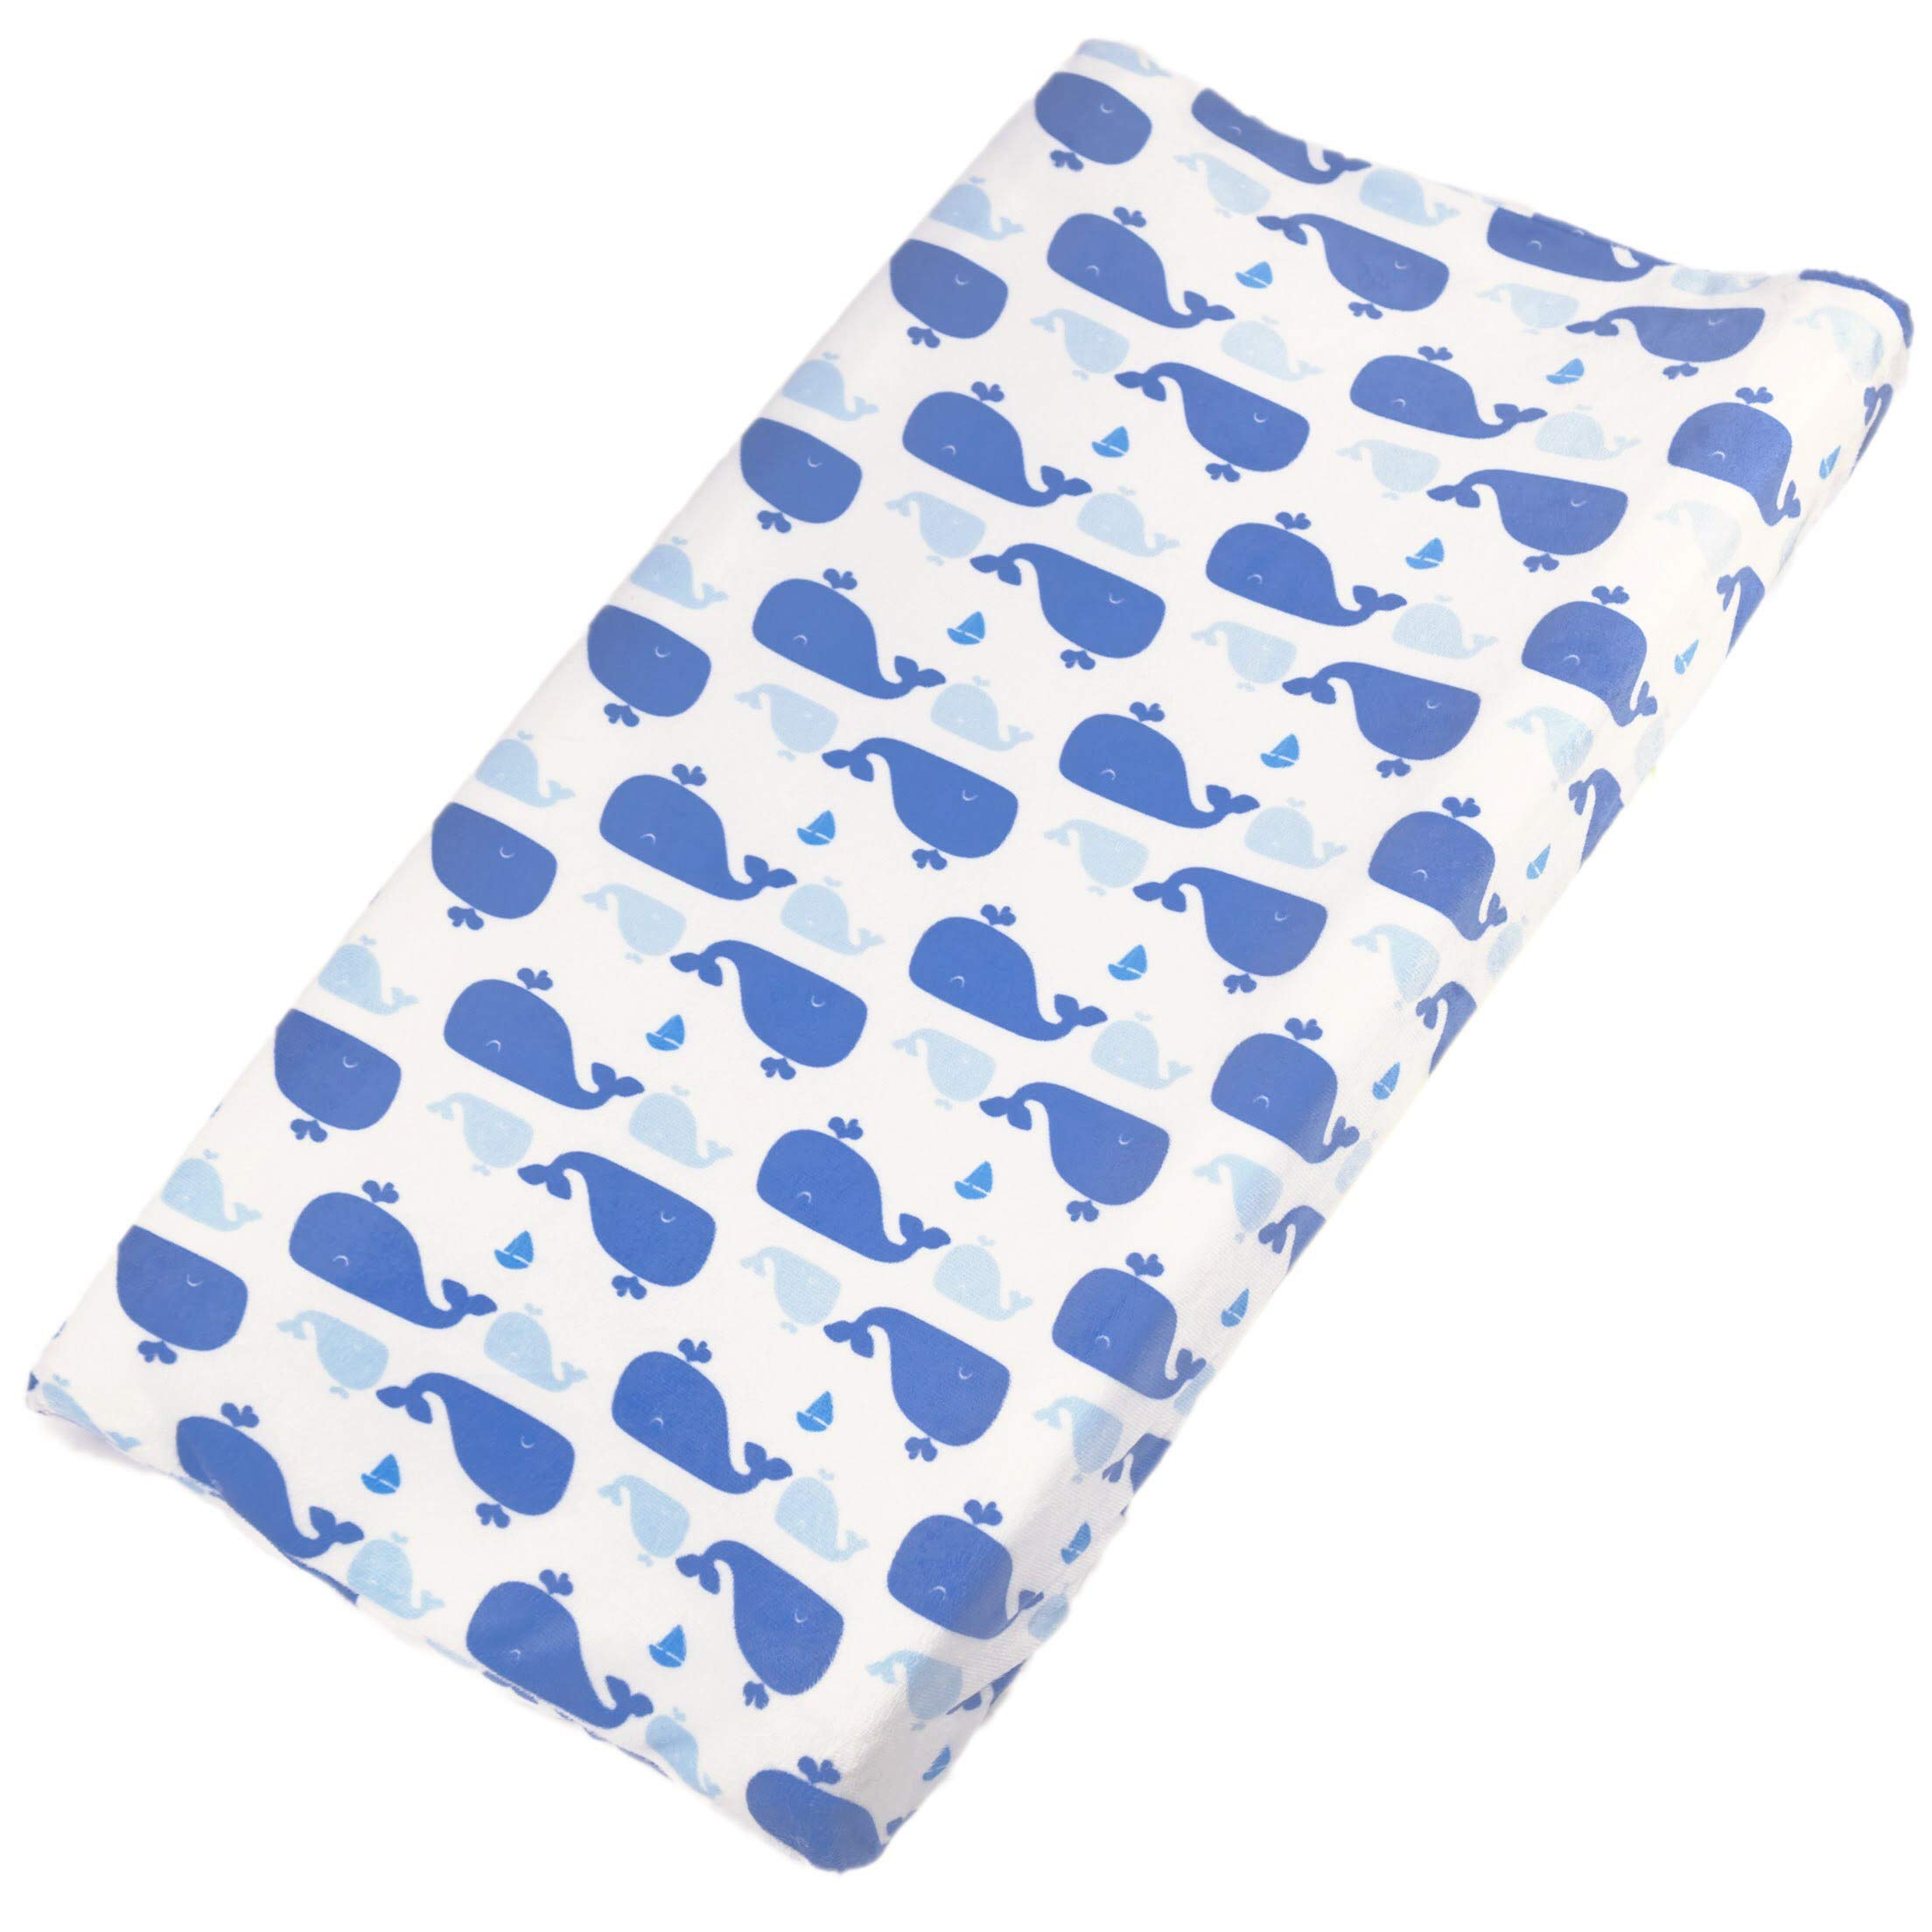 Khy's Changing Pad Cover for Baby Boys Girls, Plush Soft & Stretchy, Stain Resistant, Ocean Blue Whales Design by Khy's